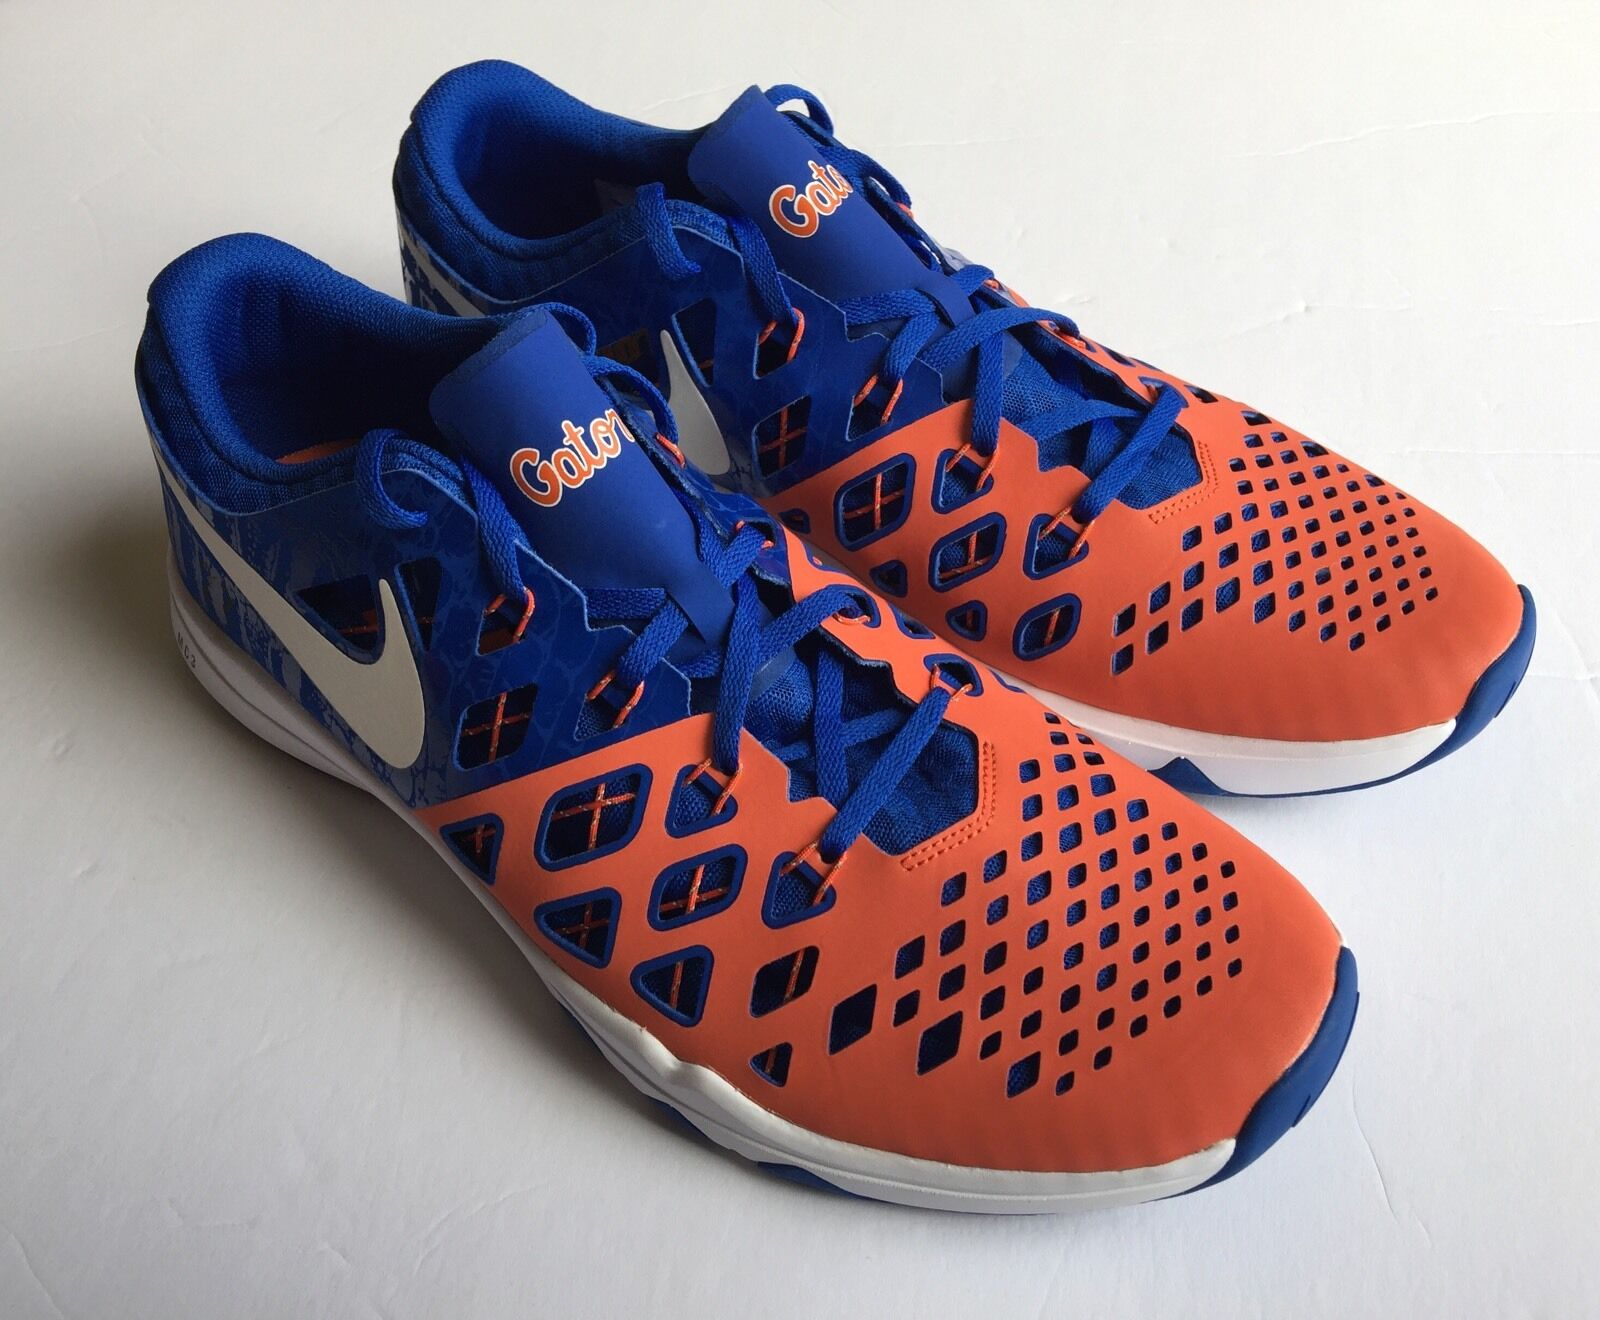 Nike ID 2016 2016 2016  Florida Gators Speed Train 4 AMP Limited Edition scarpe Dimensione 14 d8d1d4